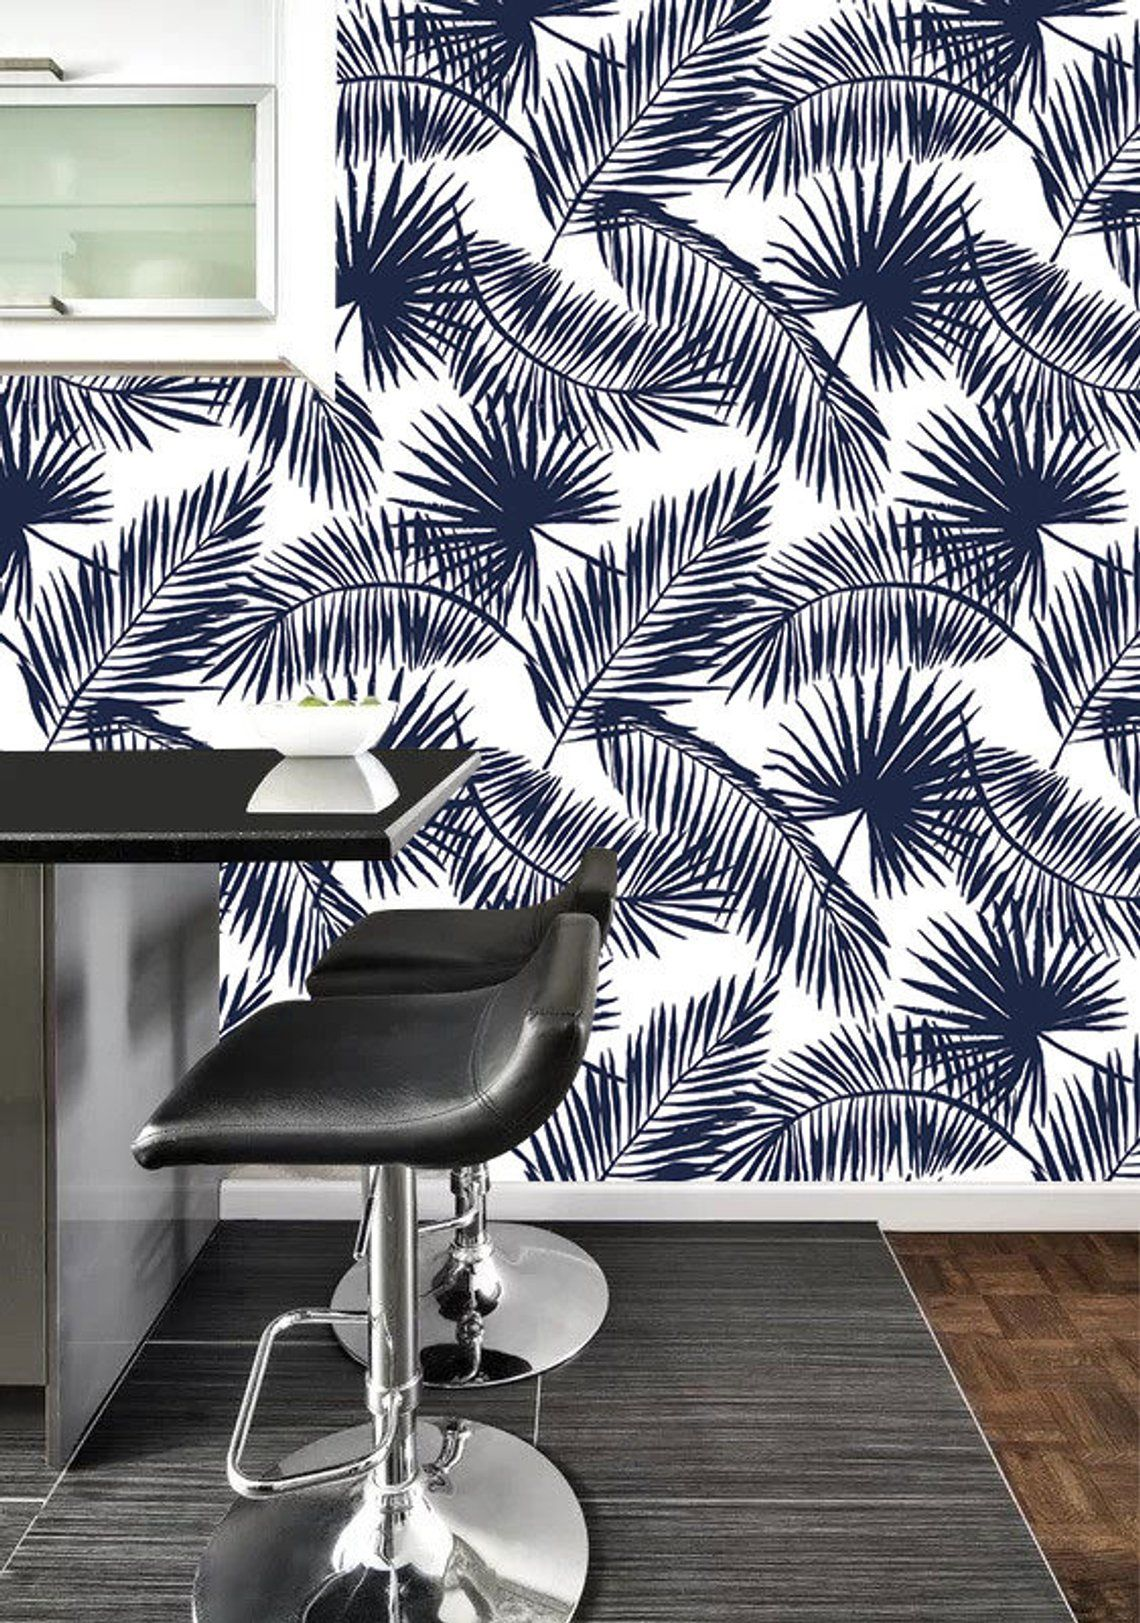 Dark Blue Tropical Palm Leaf Self Adhesive Removable Wallpaper Etsy Removable Wallpaper Tapestry Wall Art Self Adhesive Wallpaper